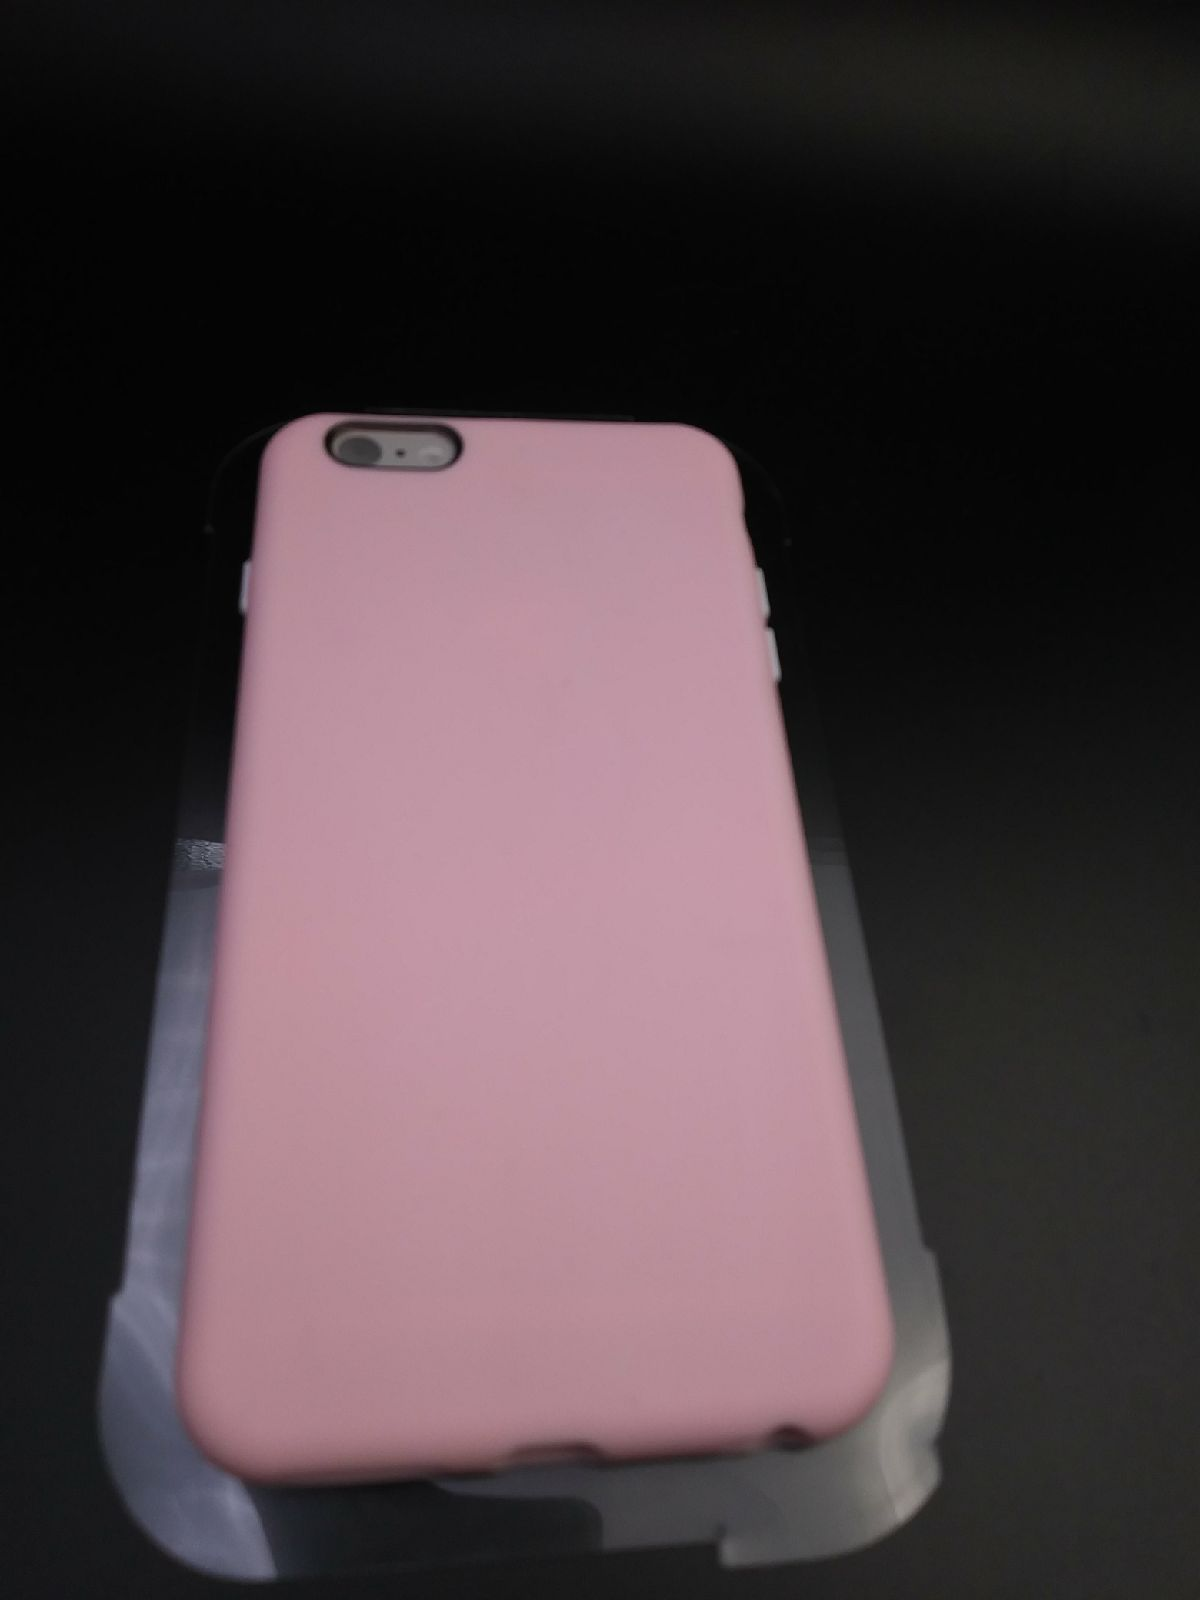 Case switcheasy iphone 6 plus